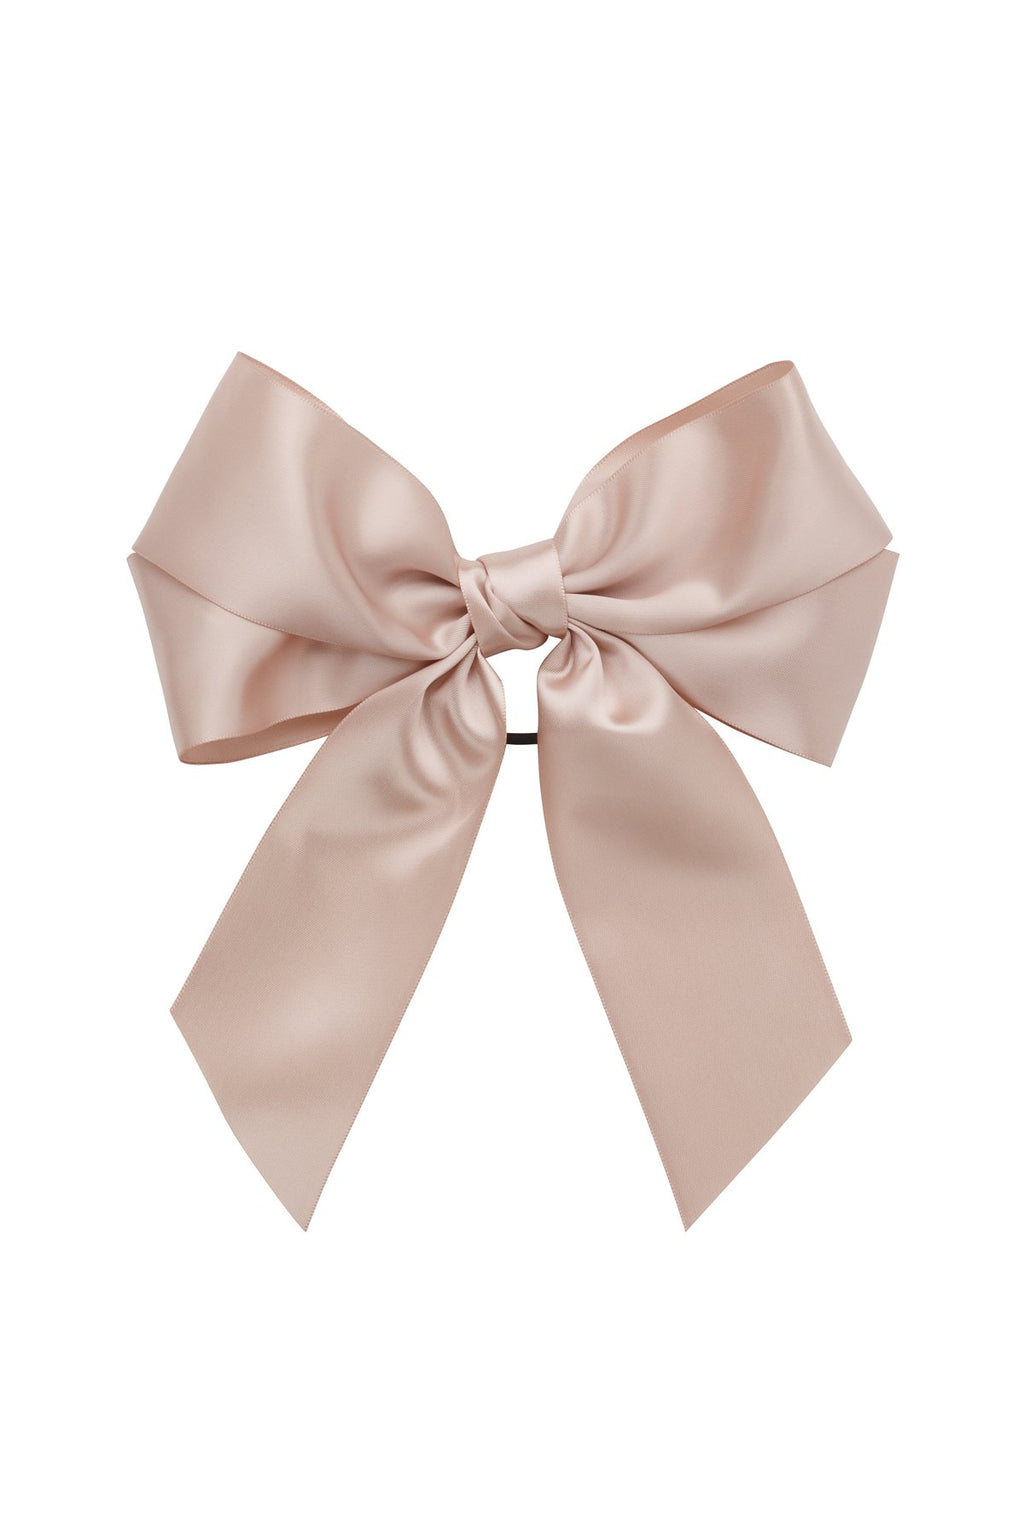 Oversized Bow Pony/Clip - Vanilla - PROJECT 6, modest fashion